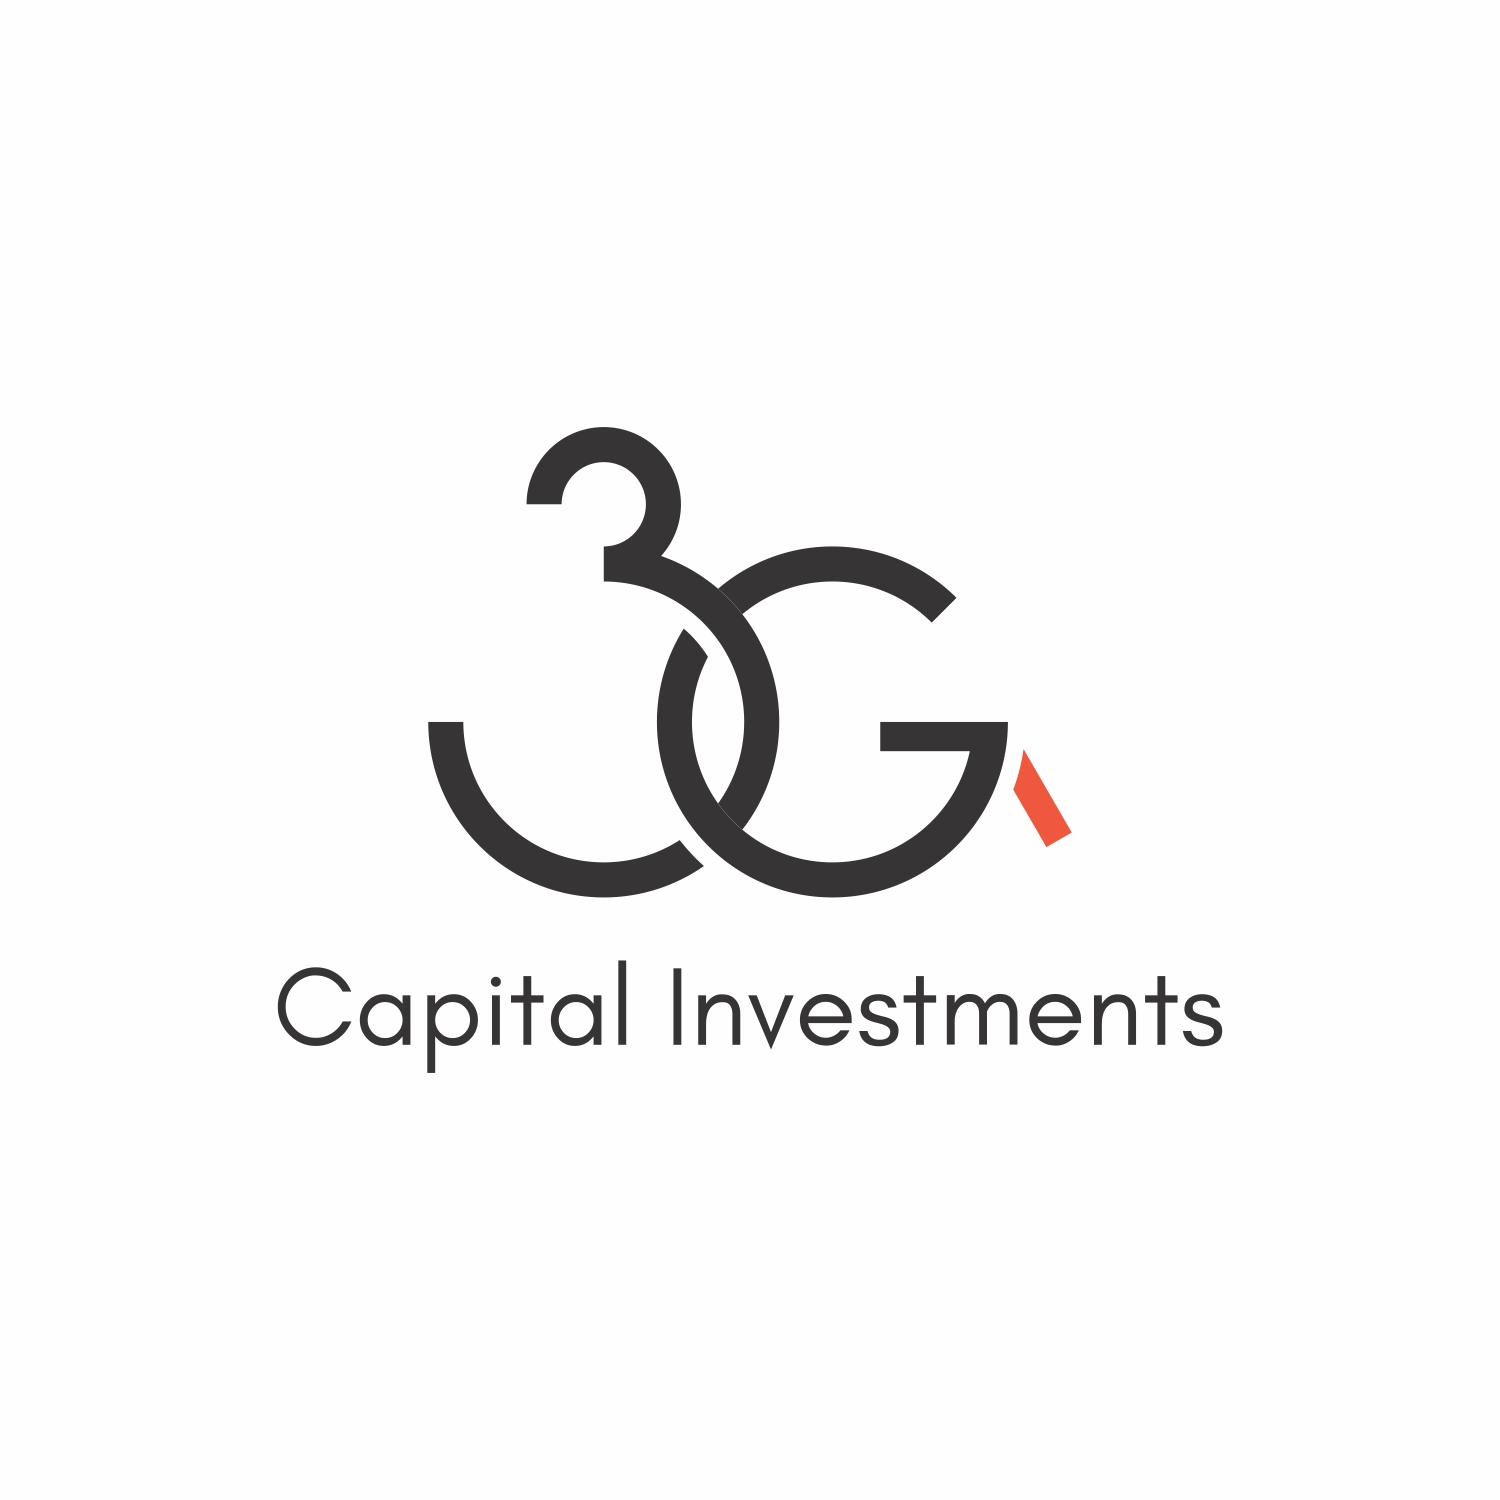 193 Professional Logo Designs for 3G Capital Investments a